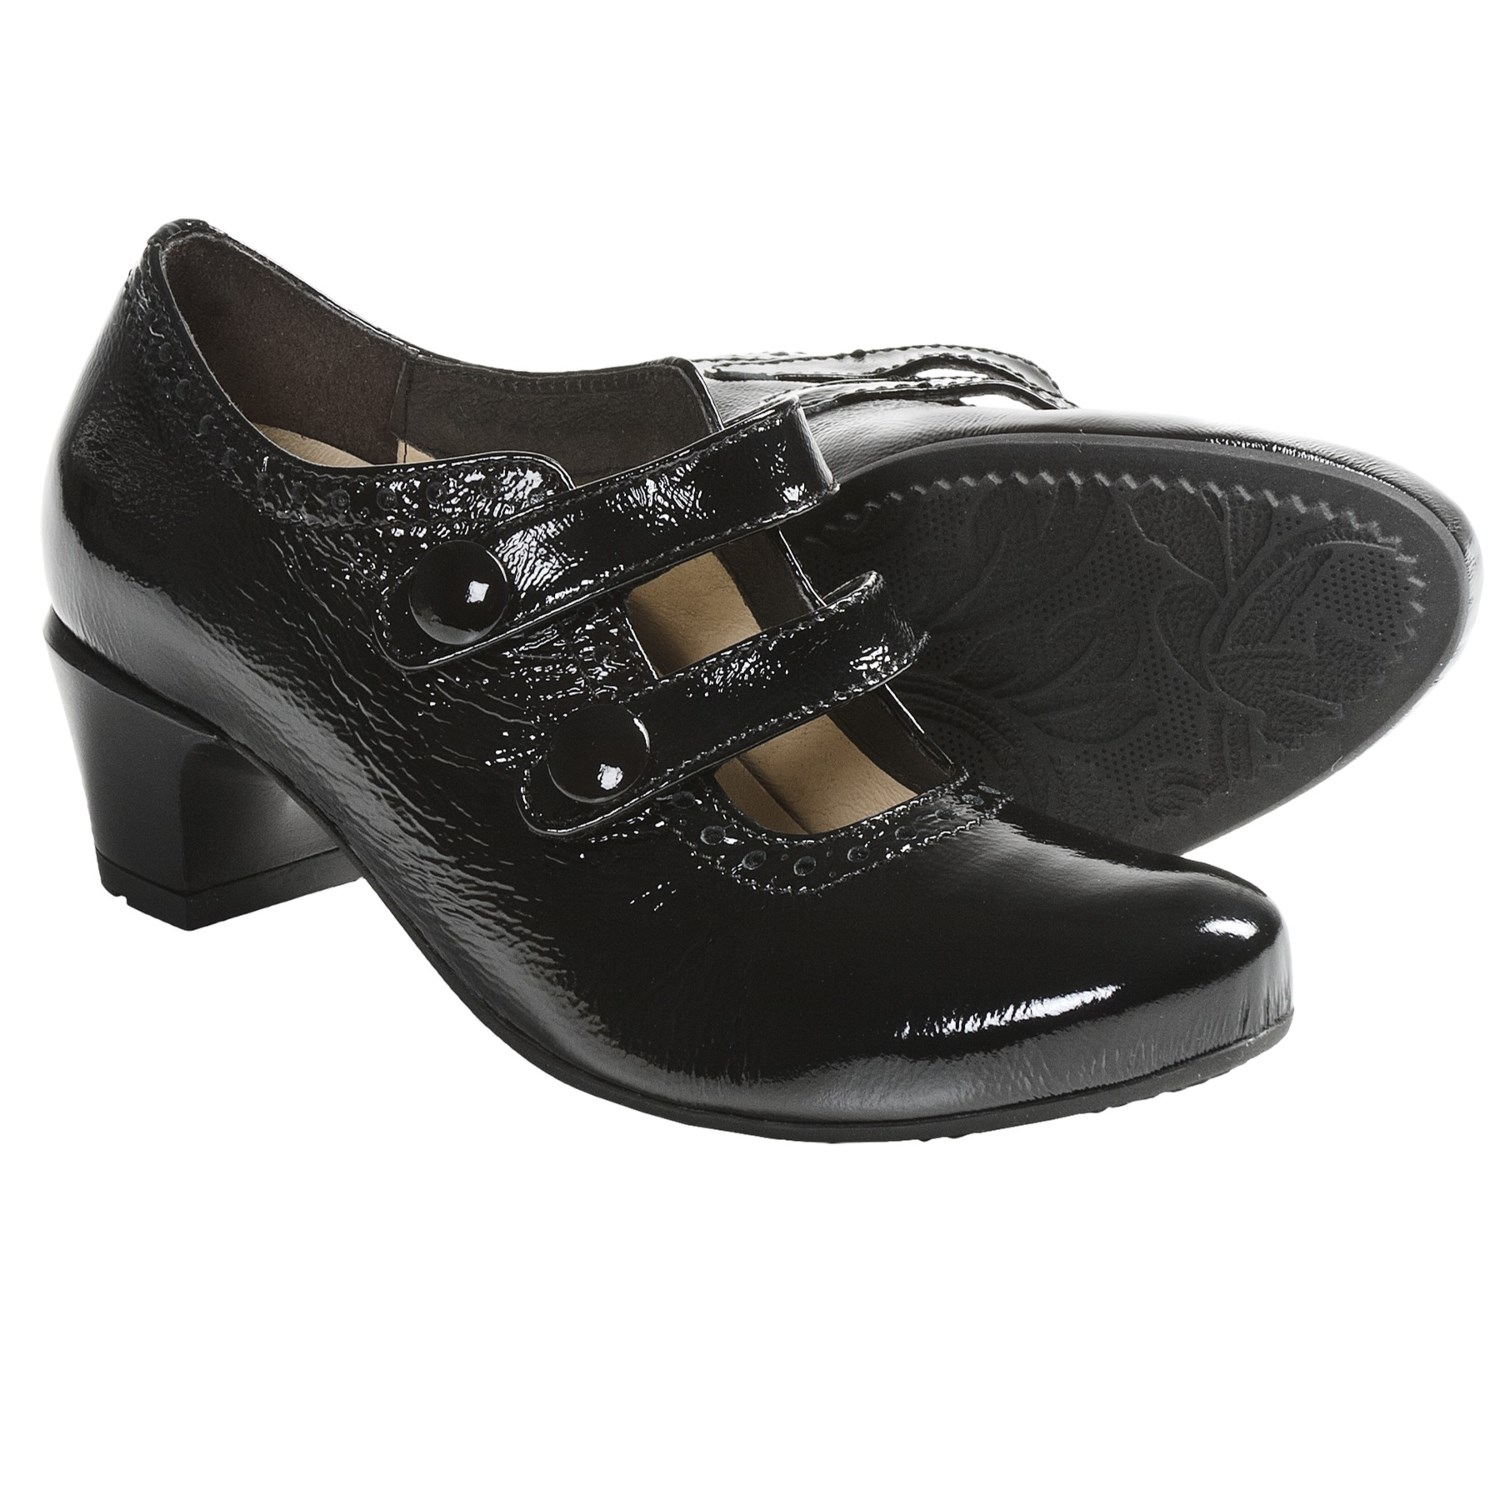 Wolky Waltz 2-Strap Shoes - Patent Leather (For Women) in Black Patent